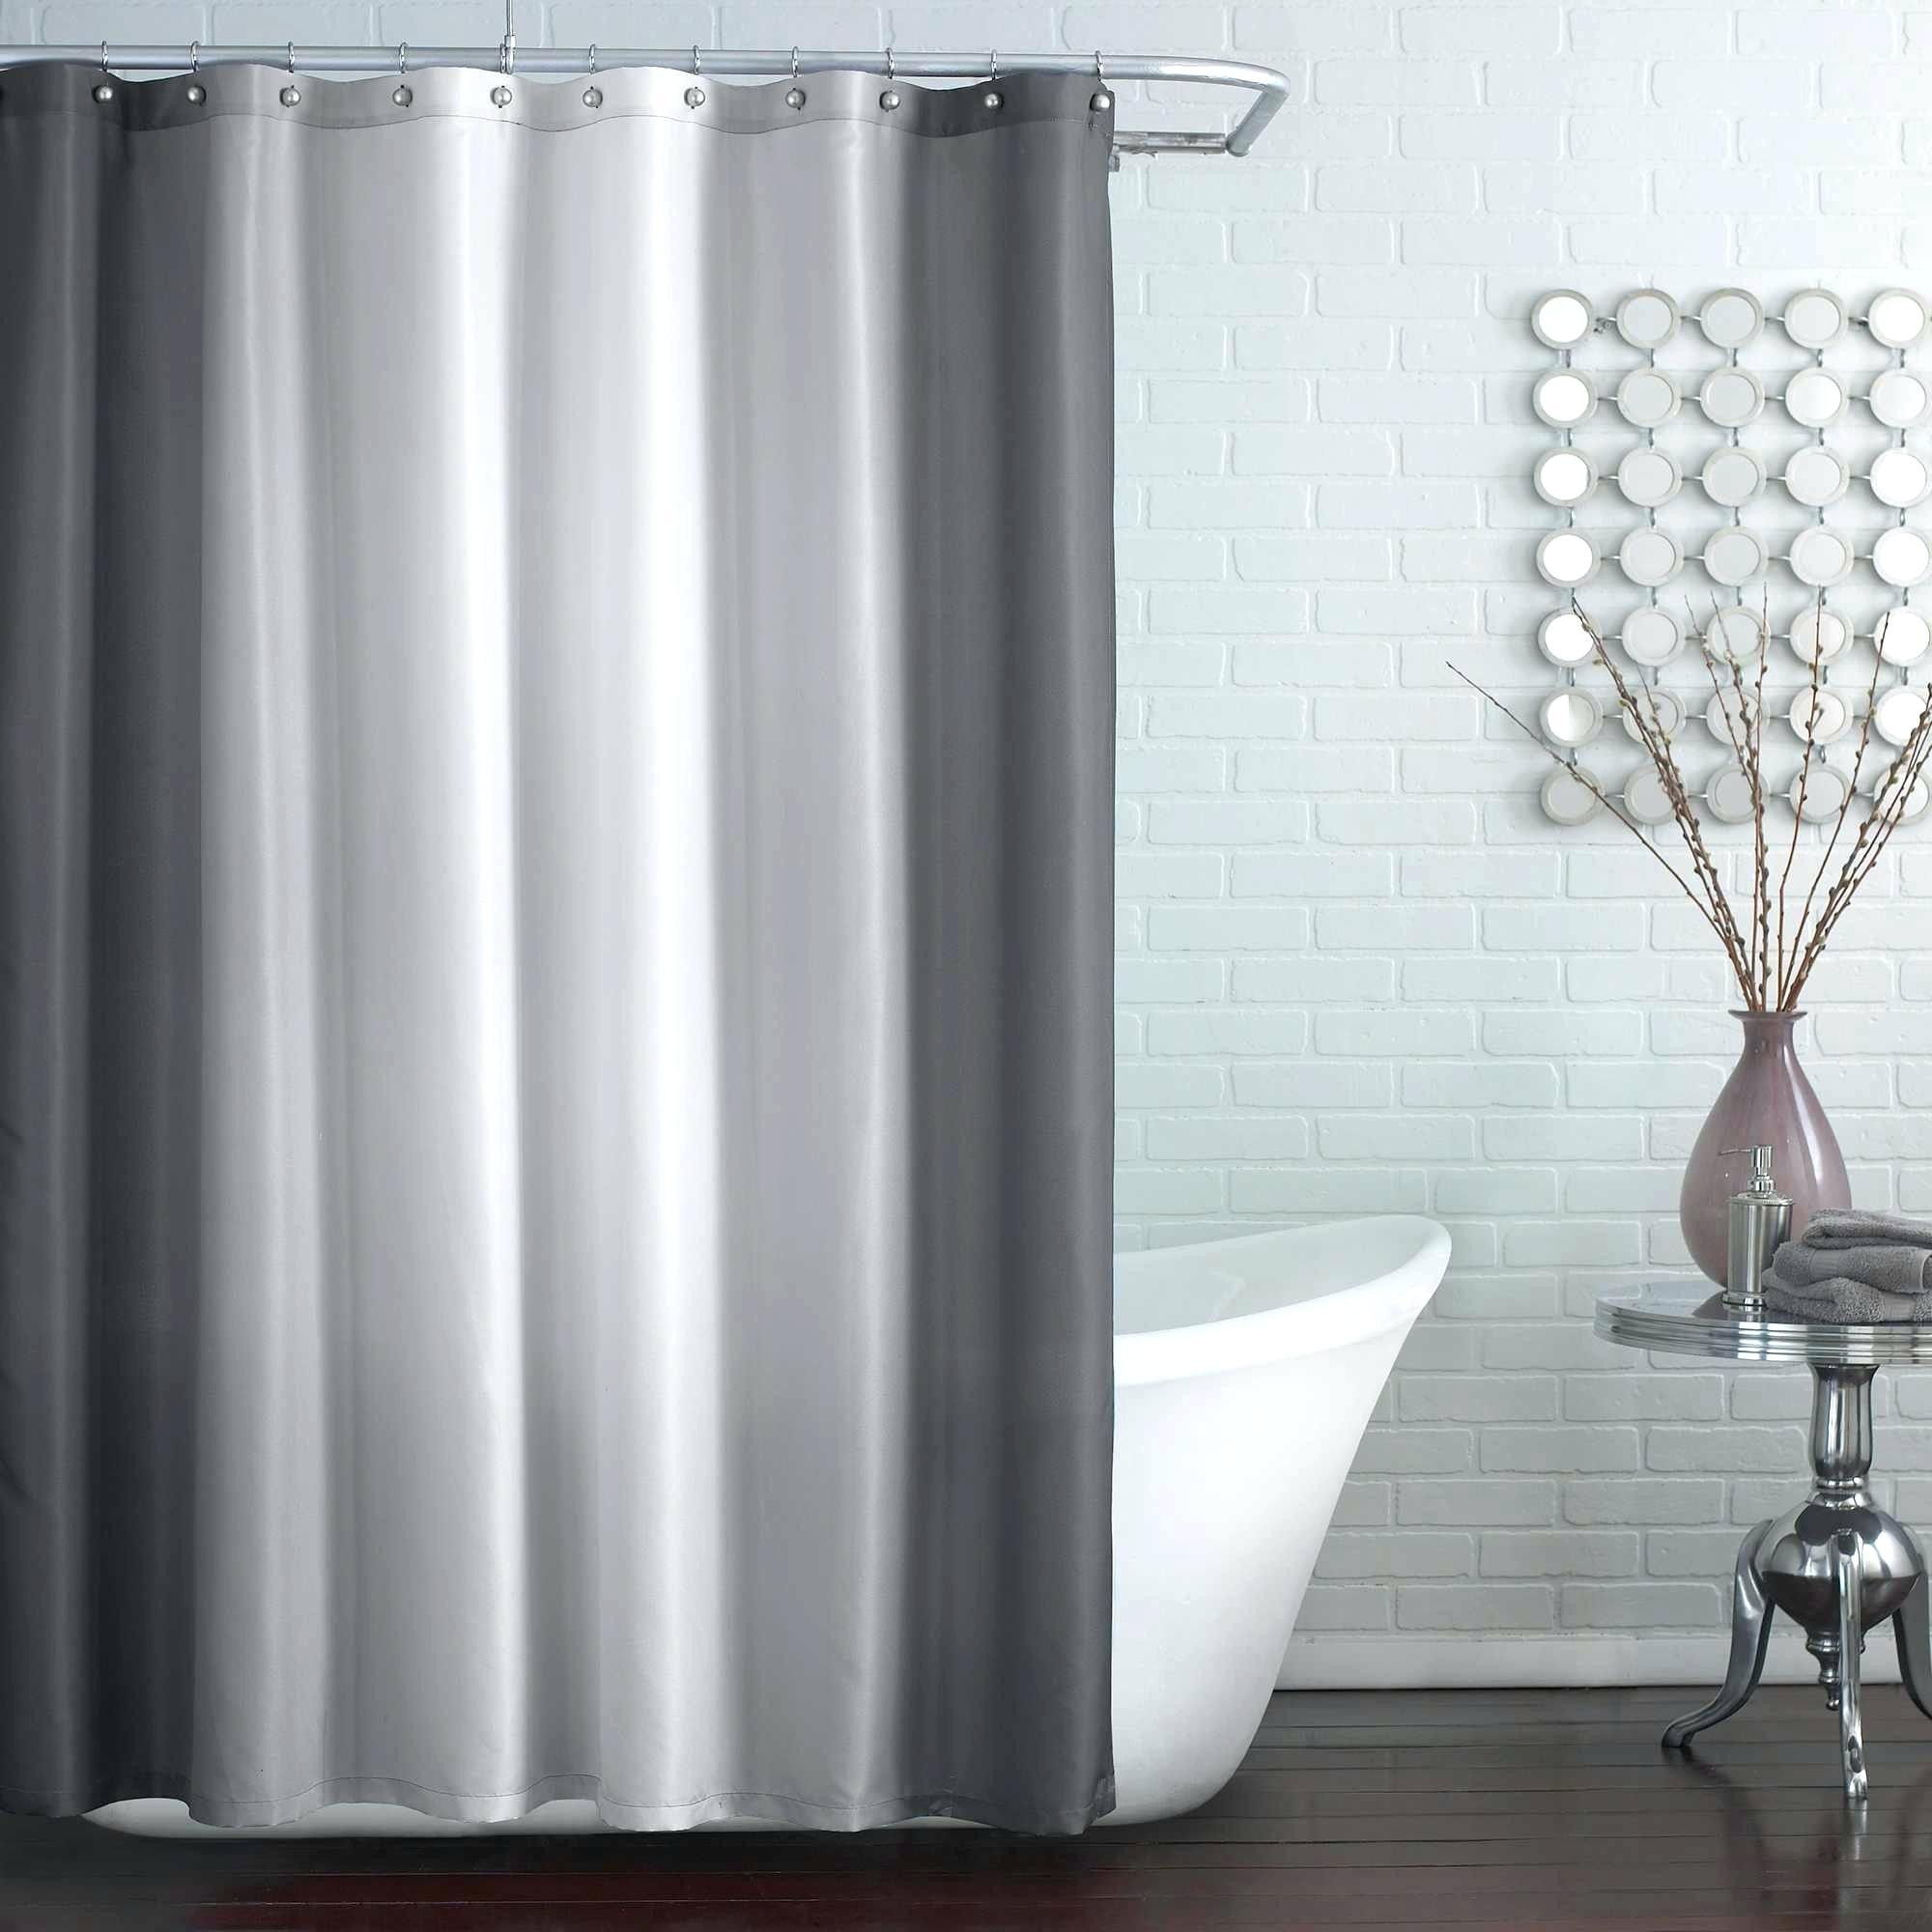 Inspirational Shower Curtain Lengths 84 Shower Curtain Lengths